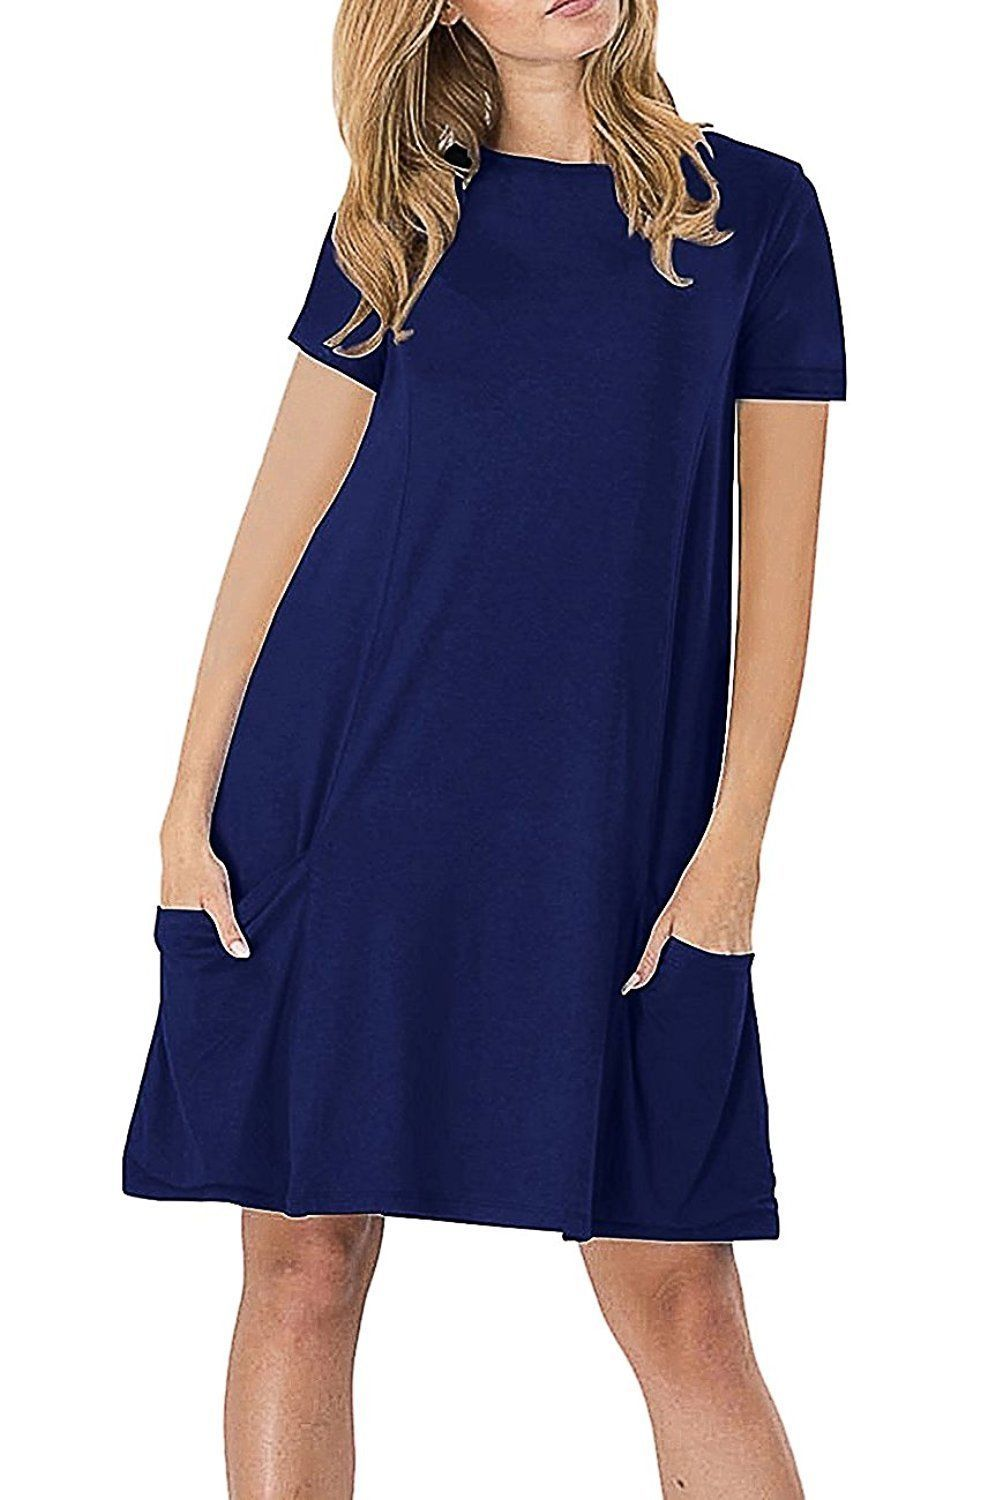 awesome great navyblue summer vintage dresses for women plus size